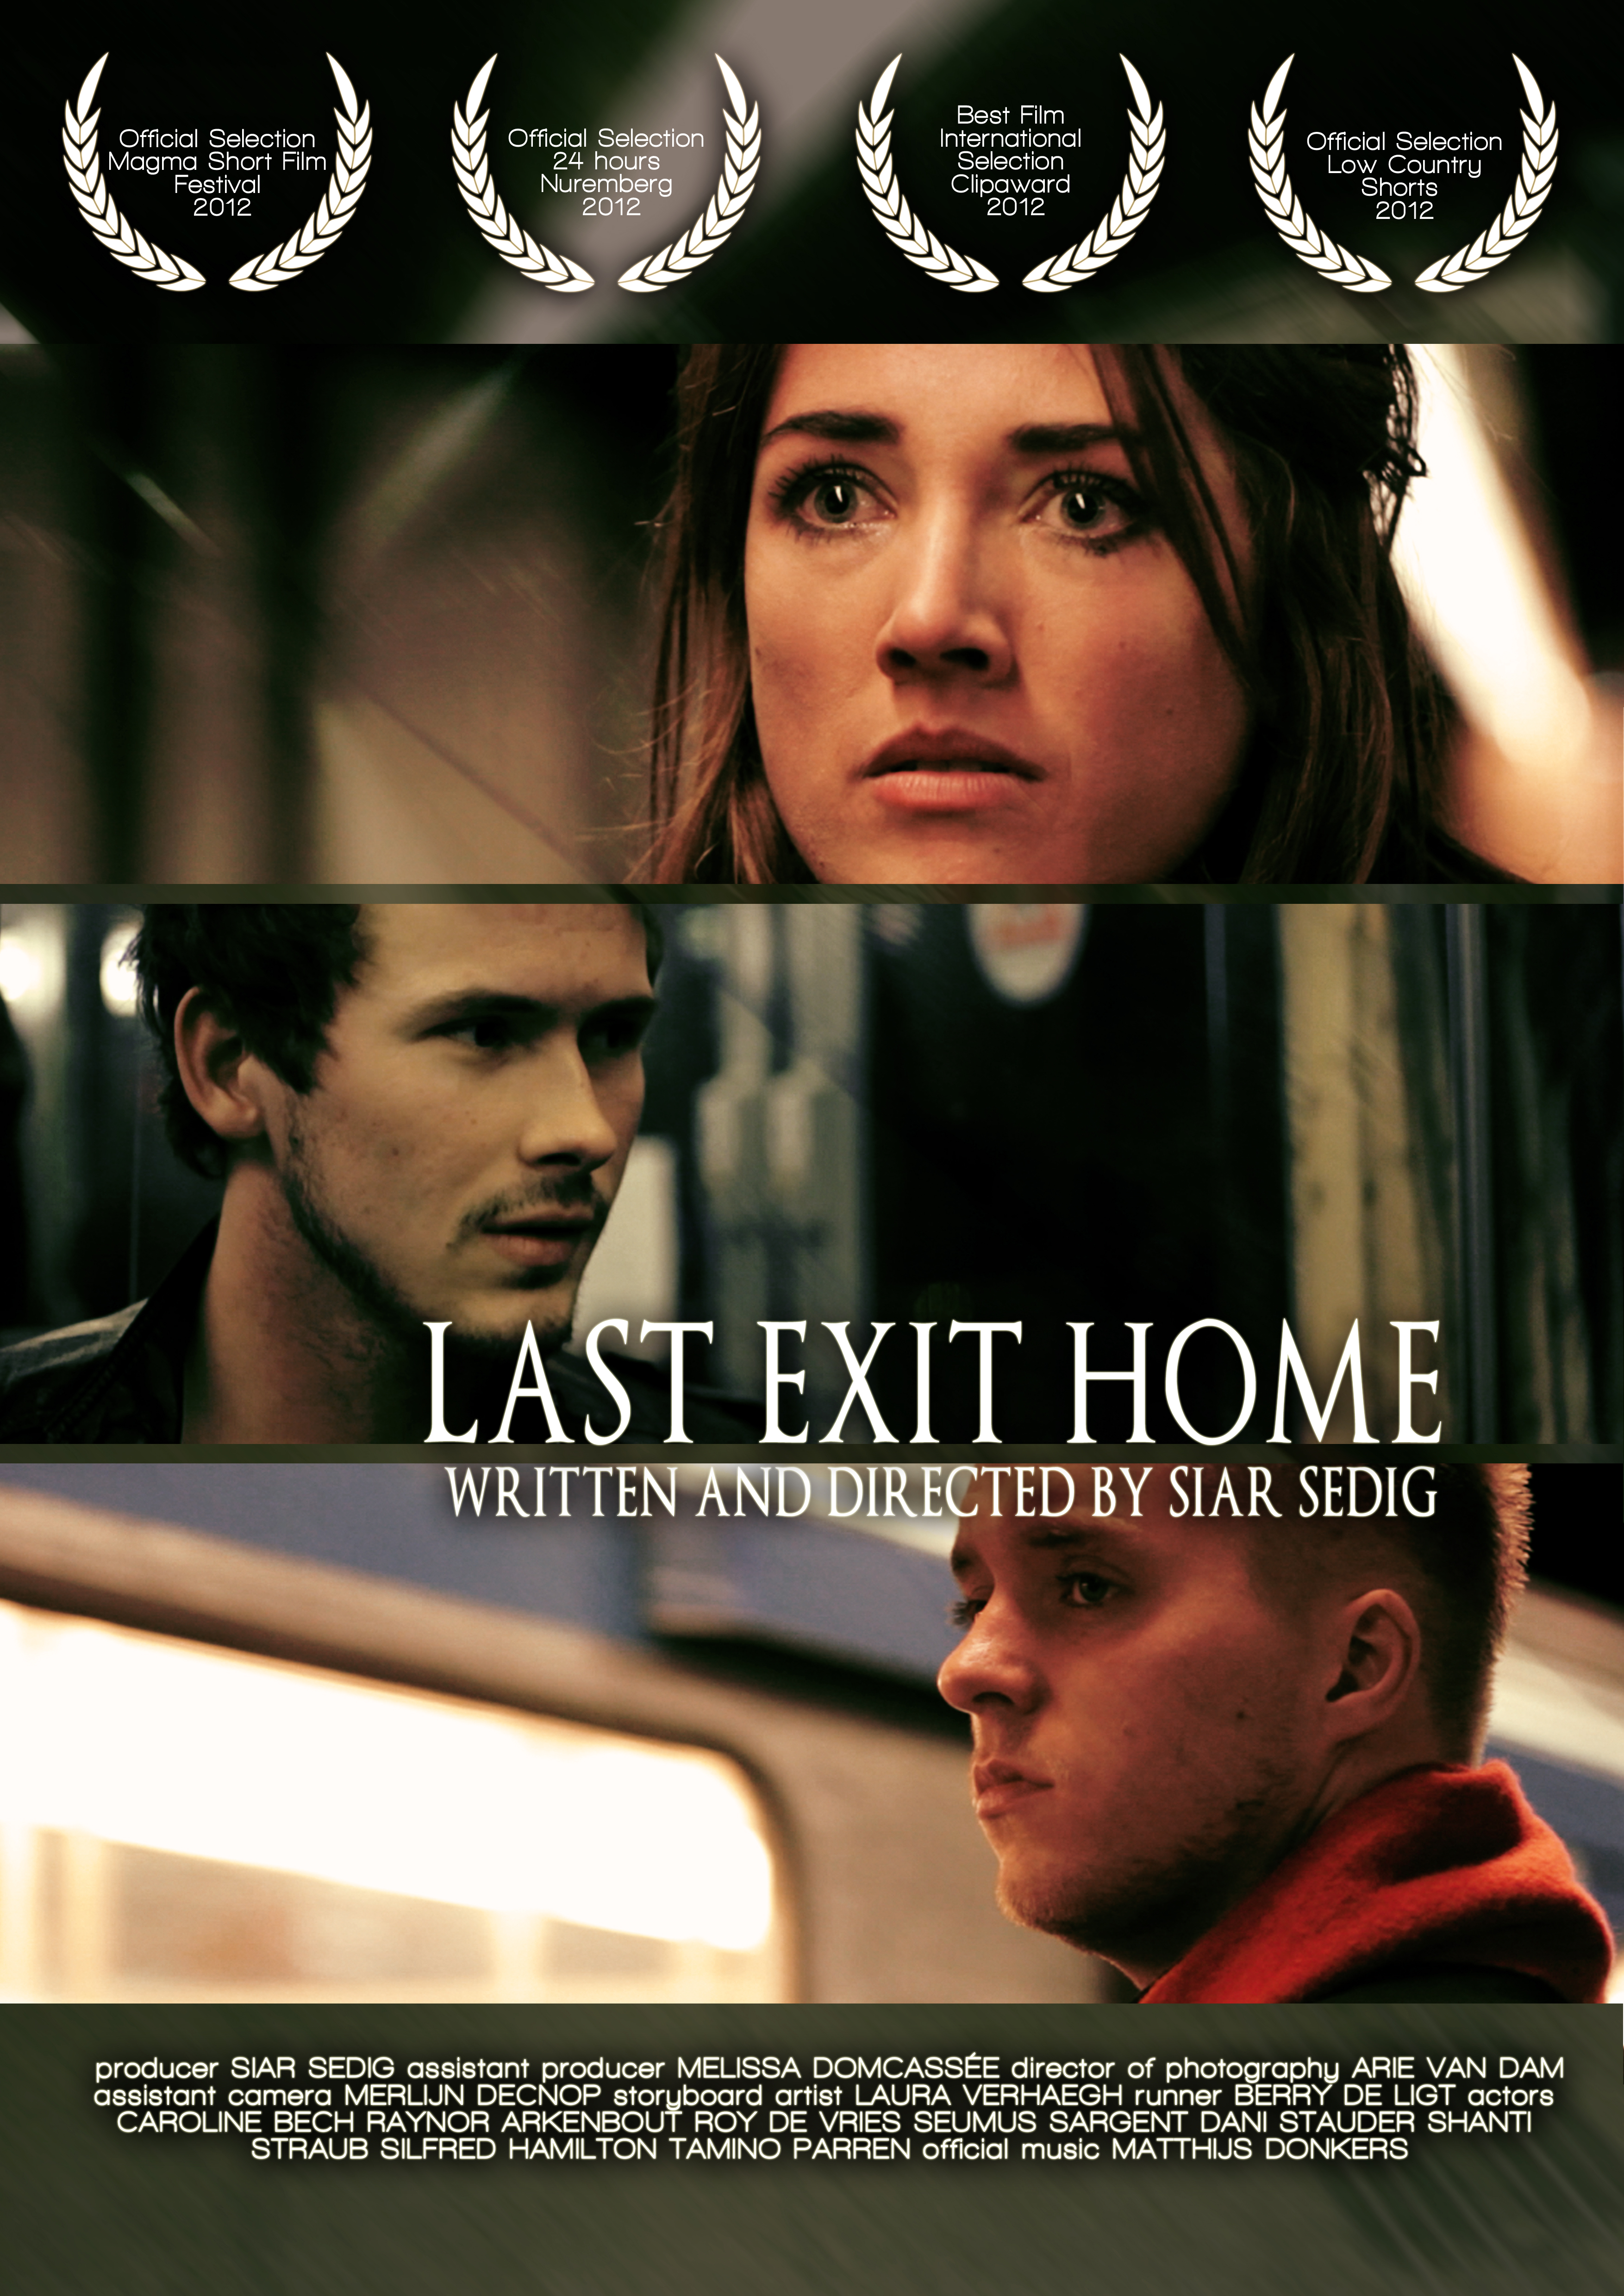 last_exit_home 2012